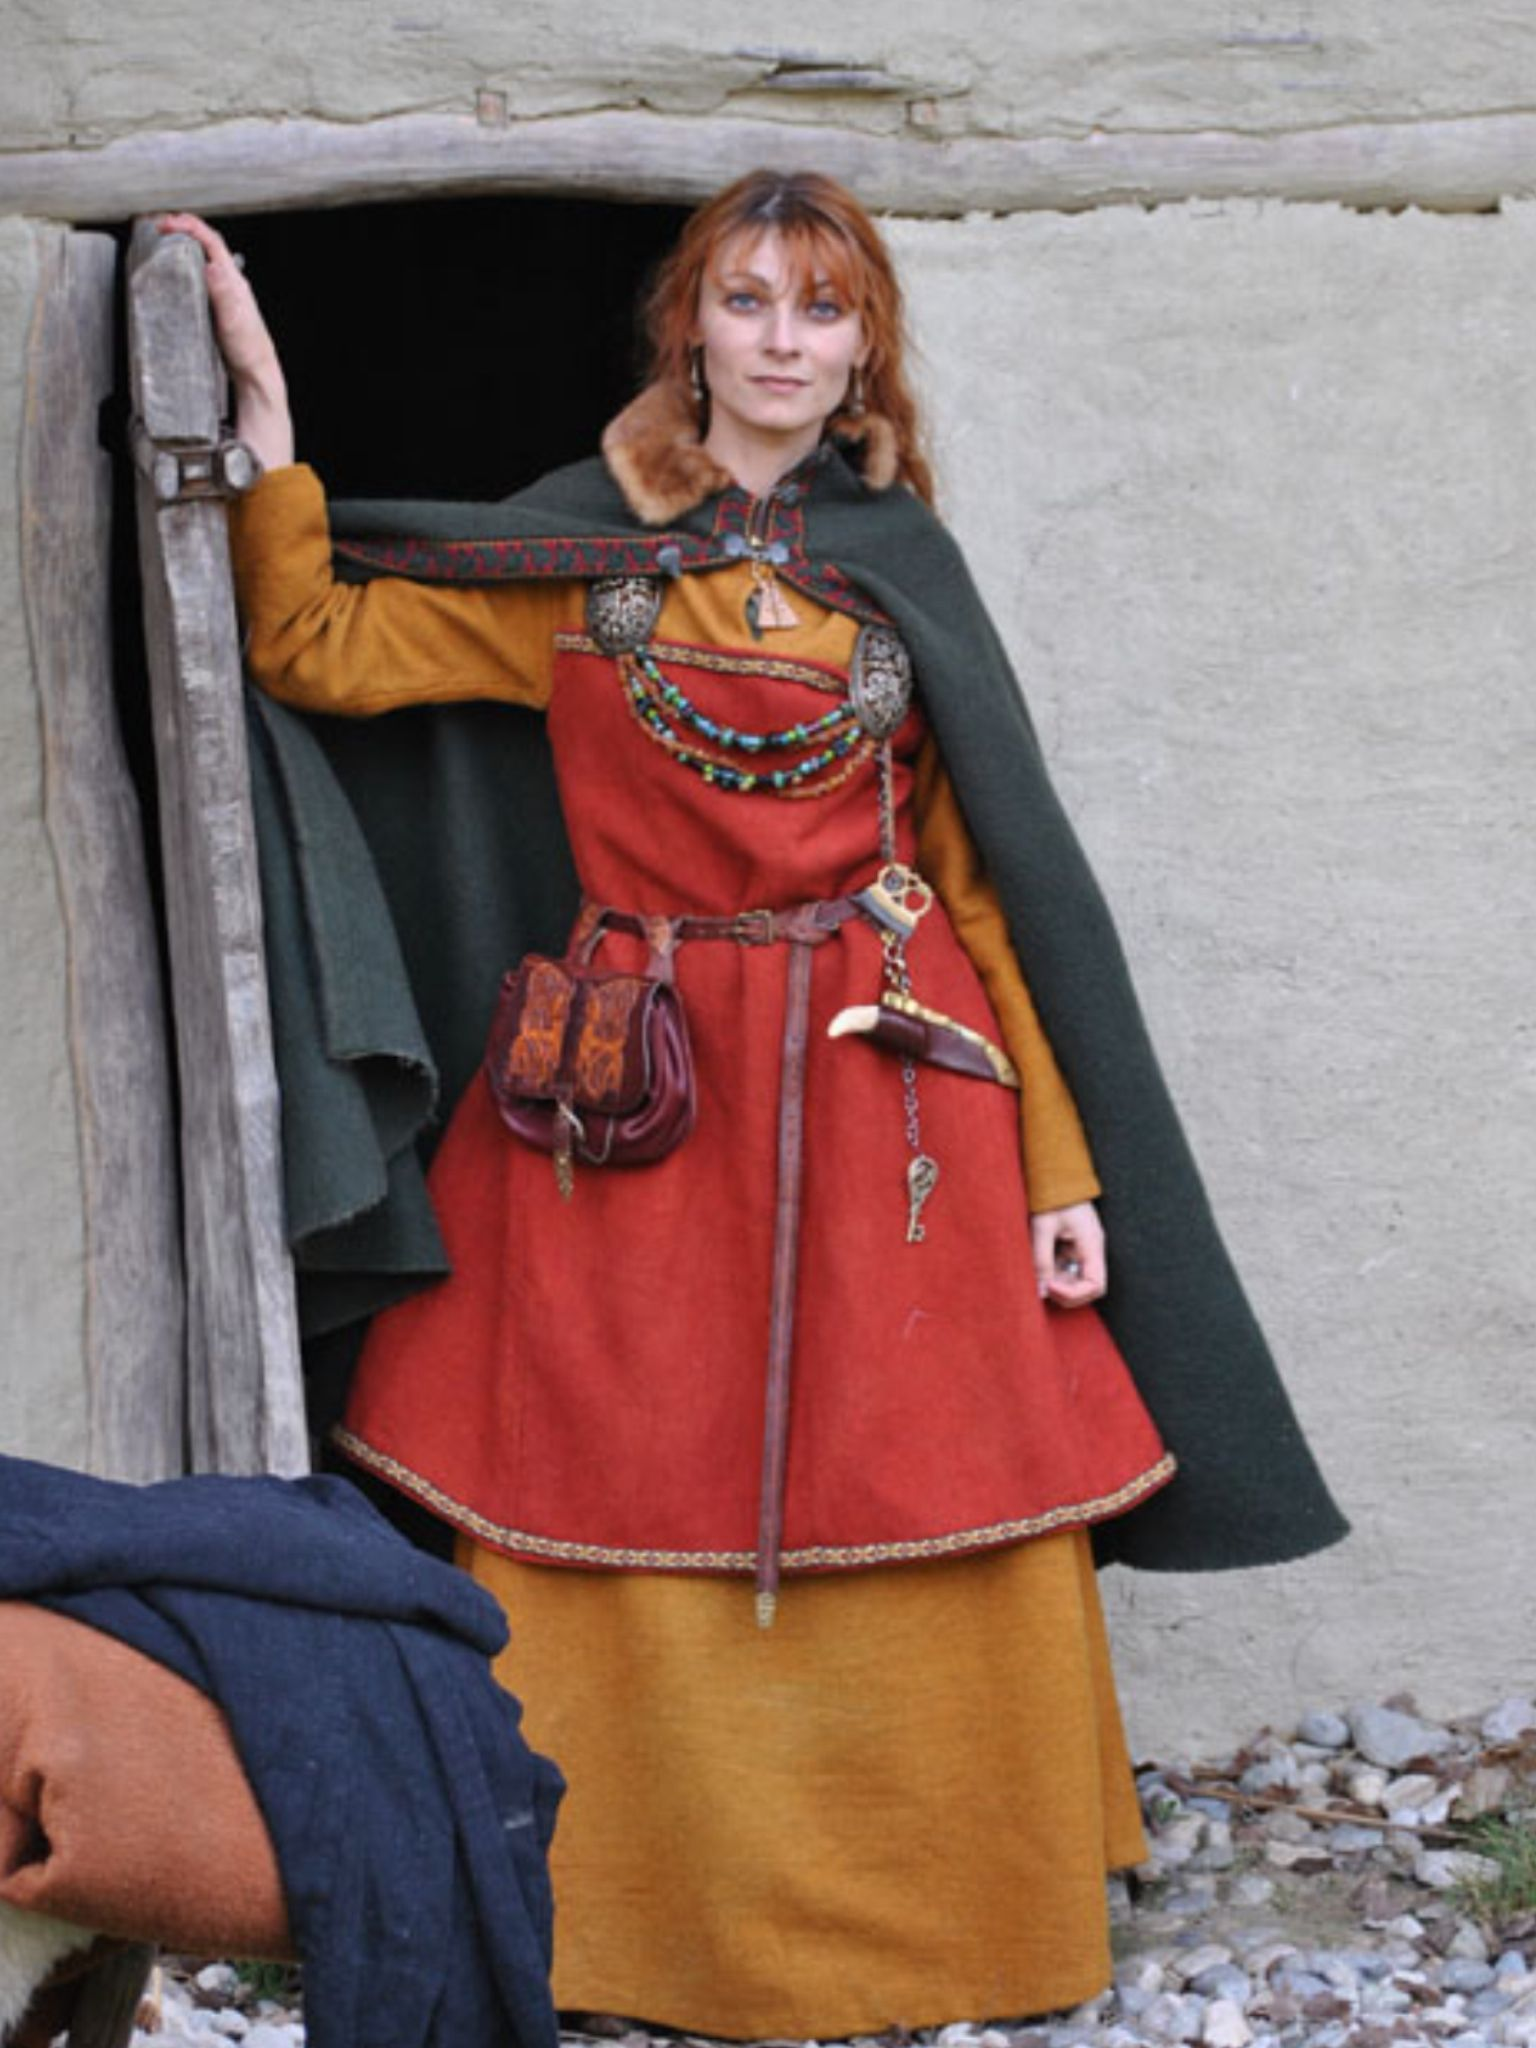 Please read this about apron dress decoration: http://urd.priv.no/viking/smokkr.html Please read this site about belts: http://www.medieval-baltic.us/vikbuckle.html